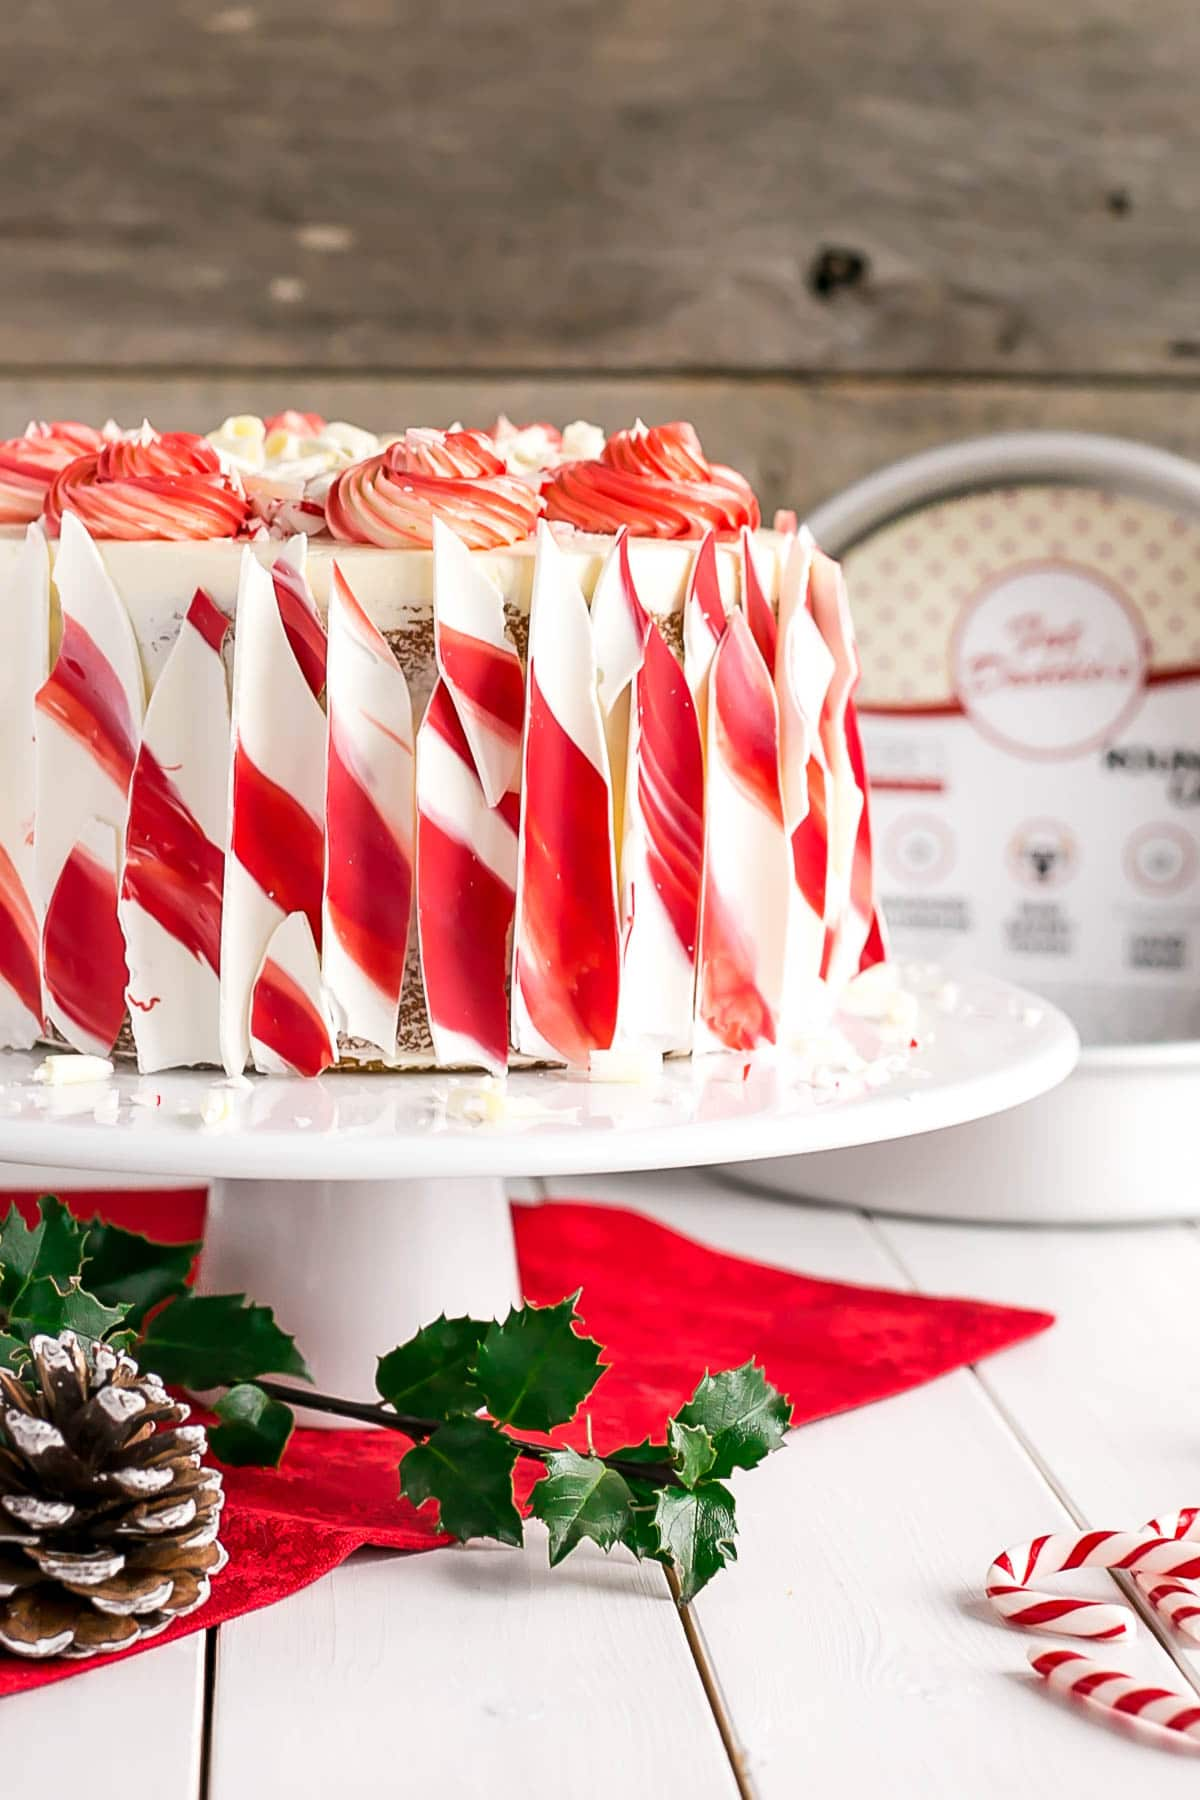 Close up of the striped candy cane bark on the side of the cake.